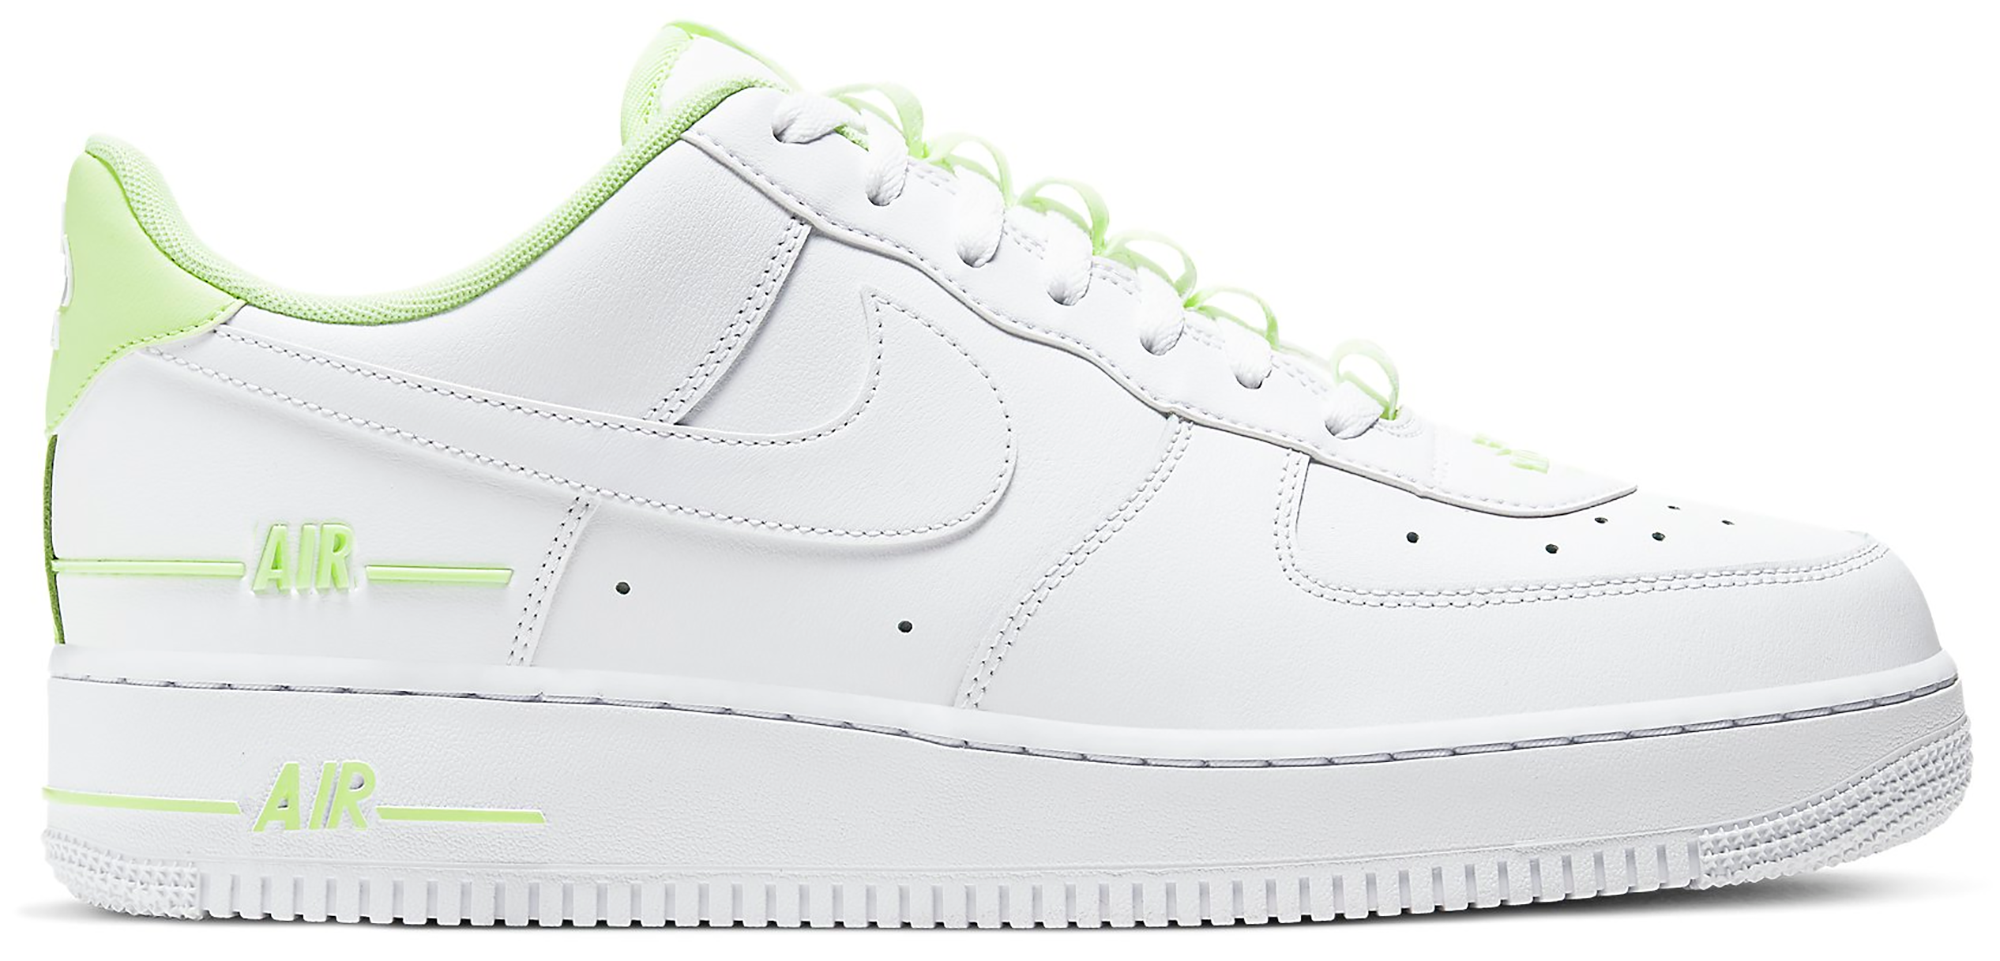 Nike Air Force 1 Low Double Air Low